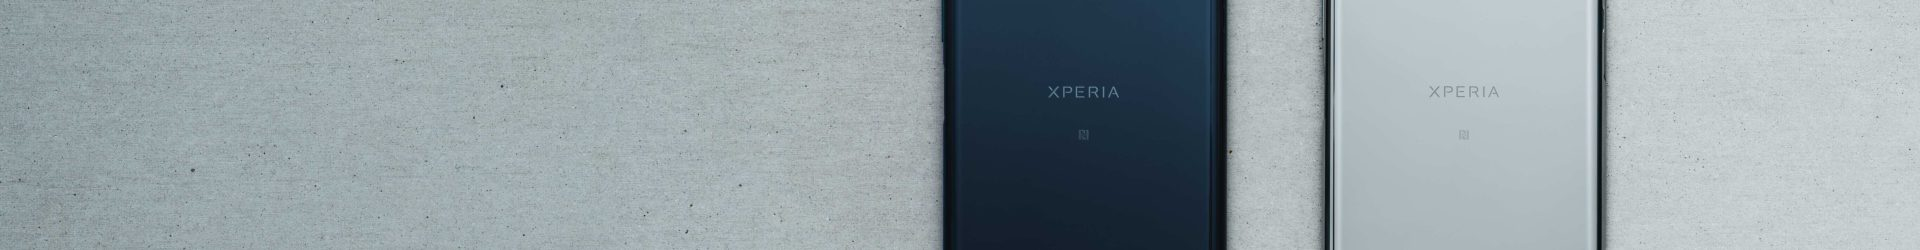 Sony Xperia XZ Premium: design Sony, display 4K, fotocamera top e Snapdragon 835